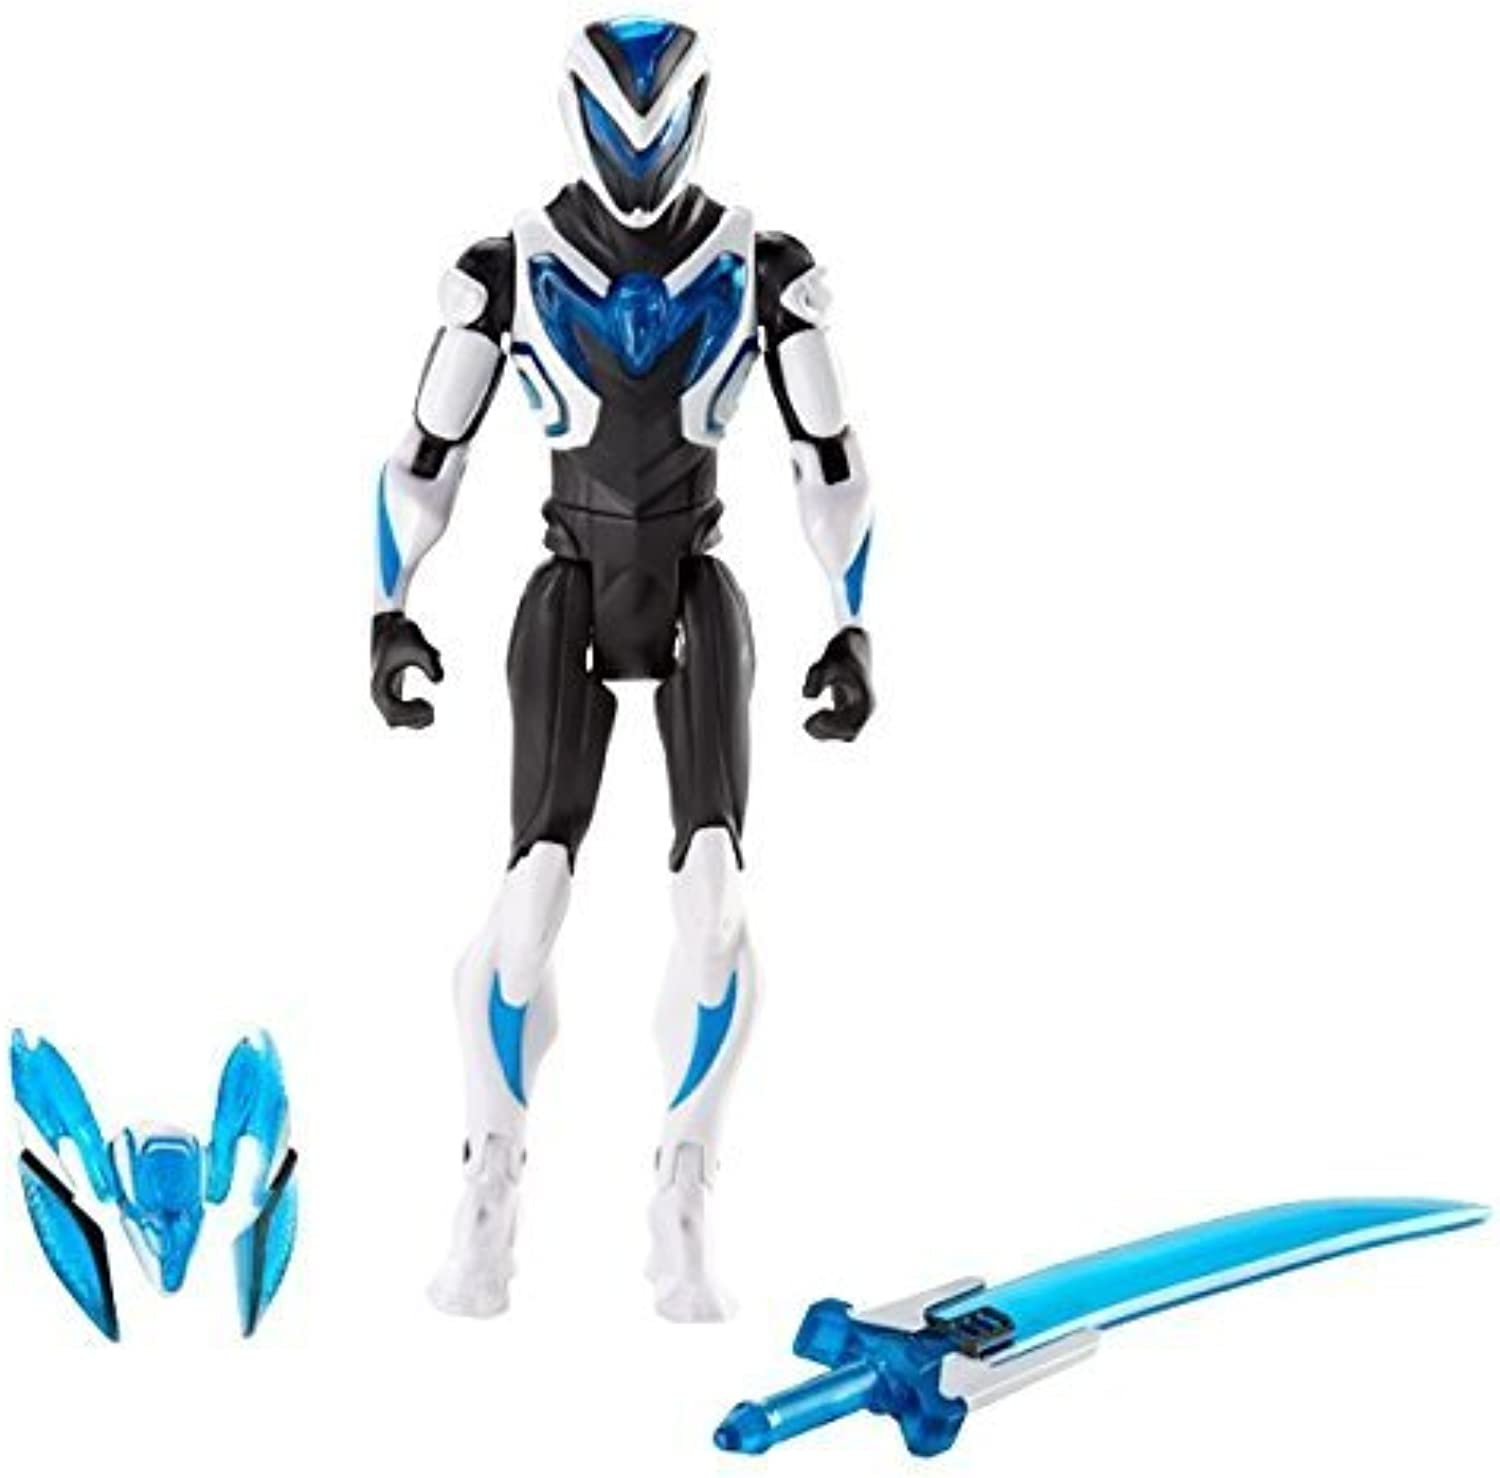 2014 SDCC Turbo Charged Max Steel w Weaponized Steel